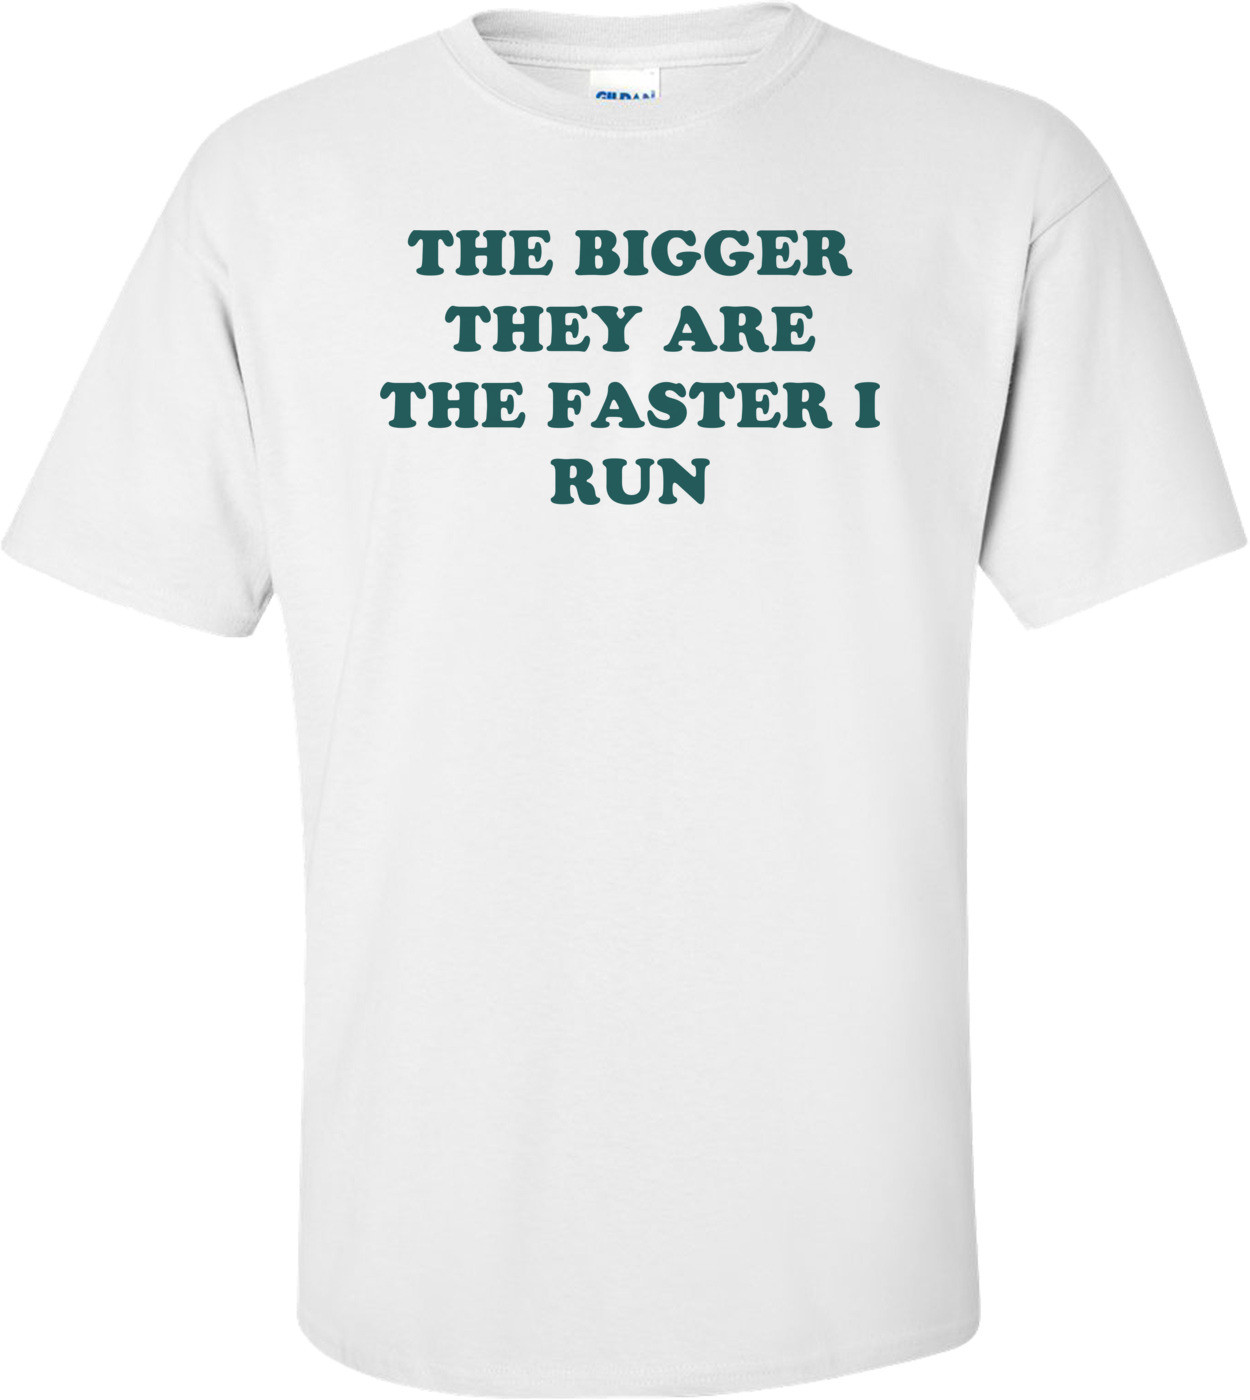 THE BIGGER THEY ARE THE FASTER I RUN Shirt